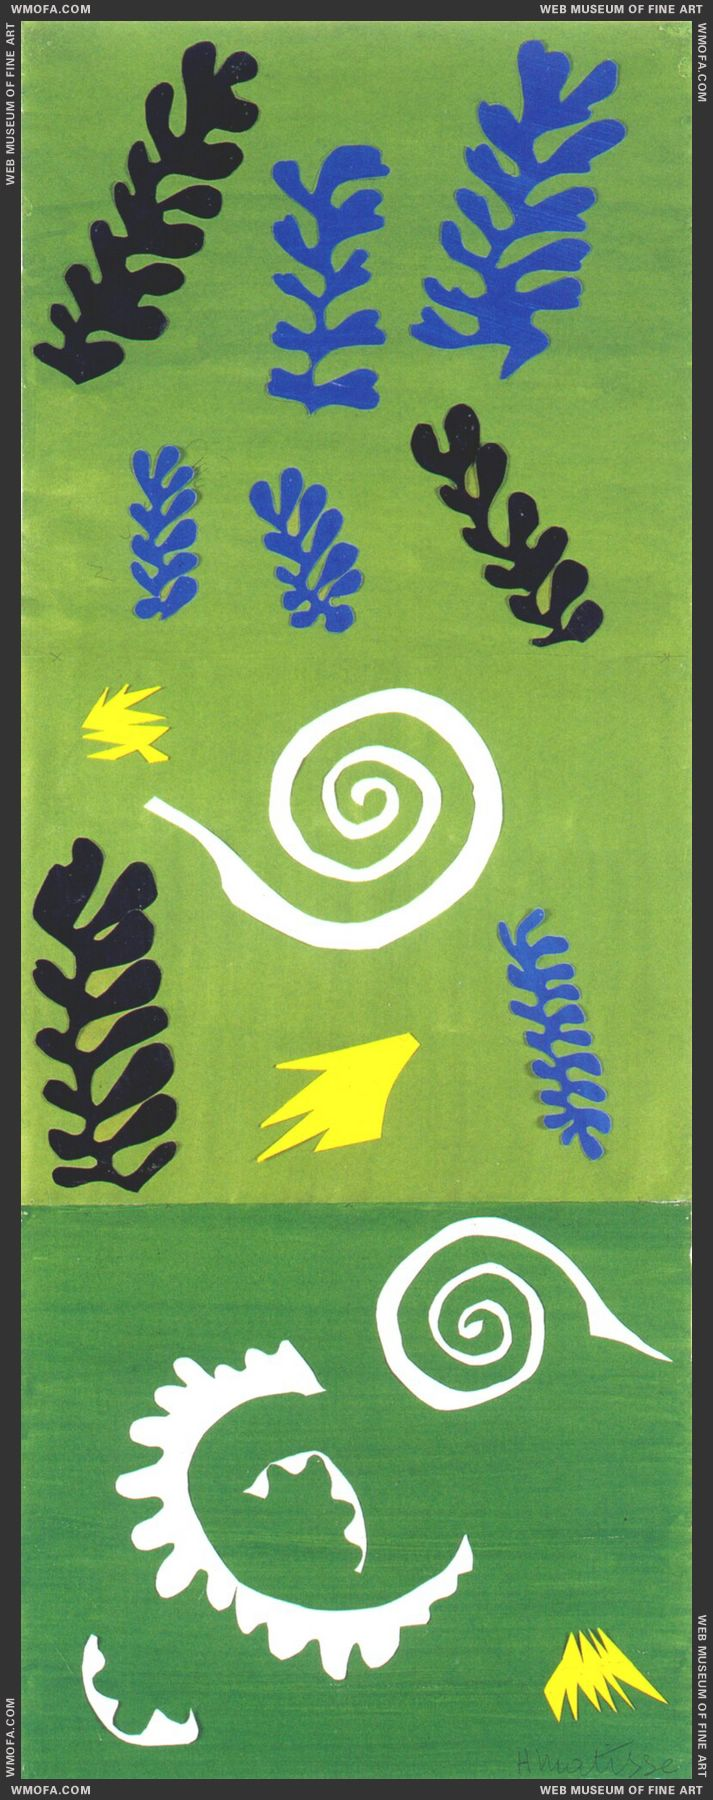 Composition on Green Ground 1947 by Matisse, Henri